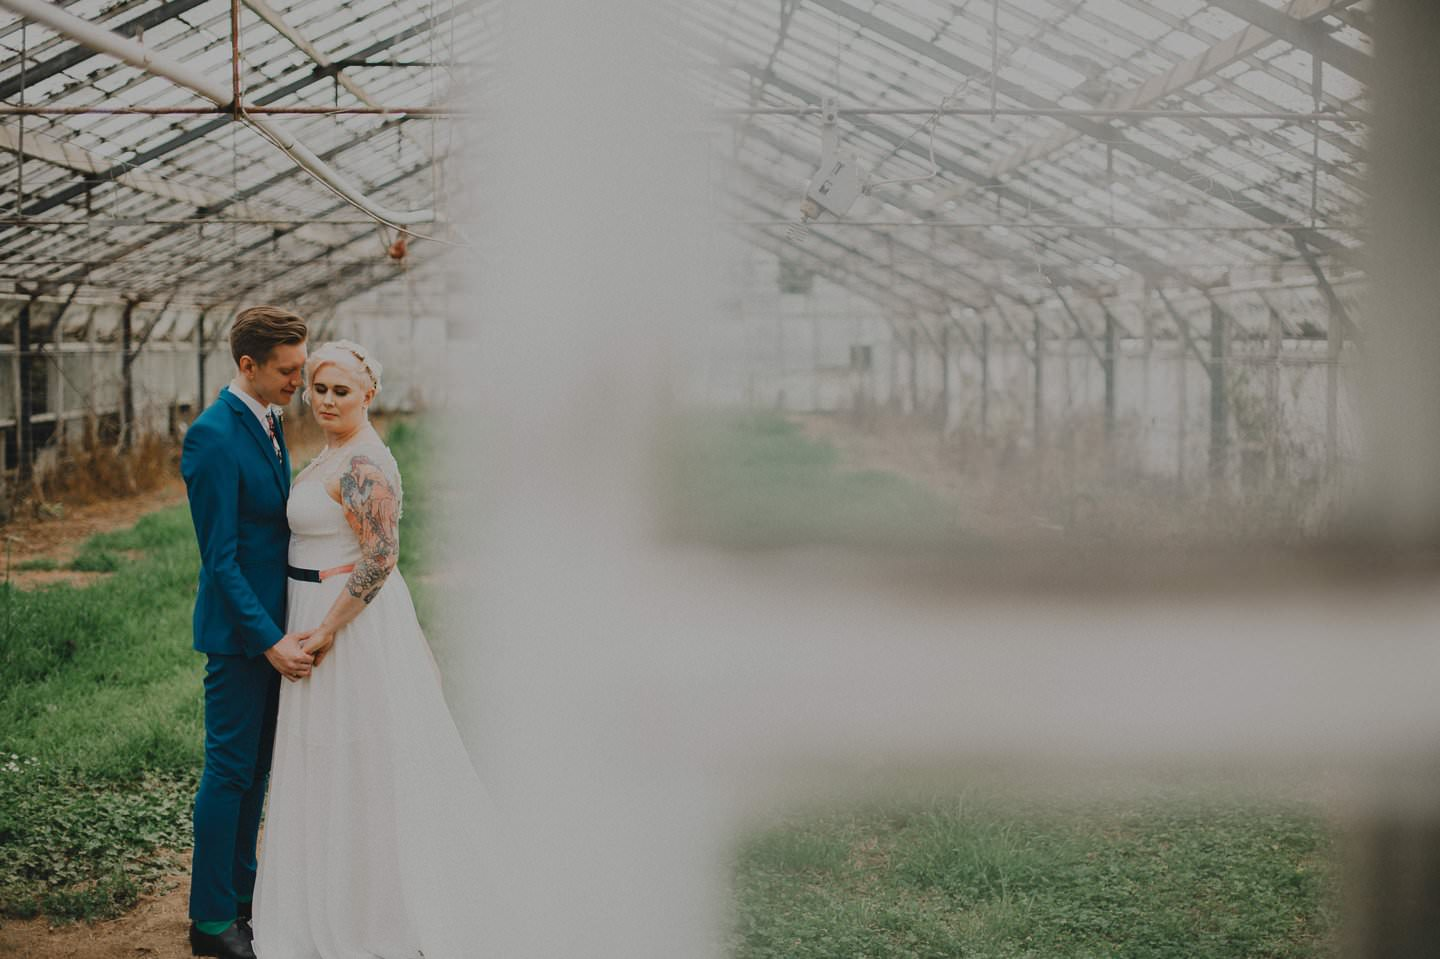 Artistic wedding photography of couple in a glass house